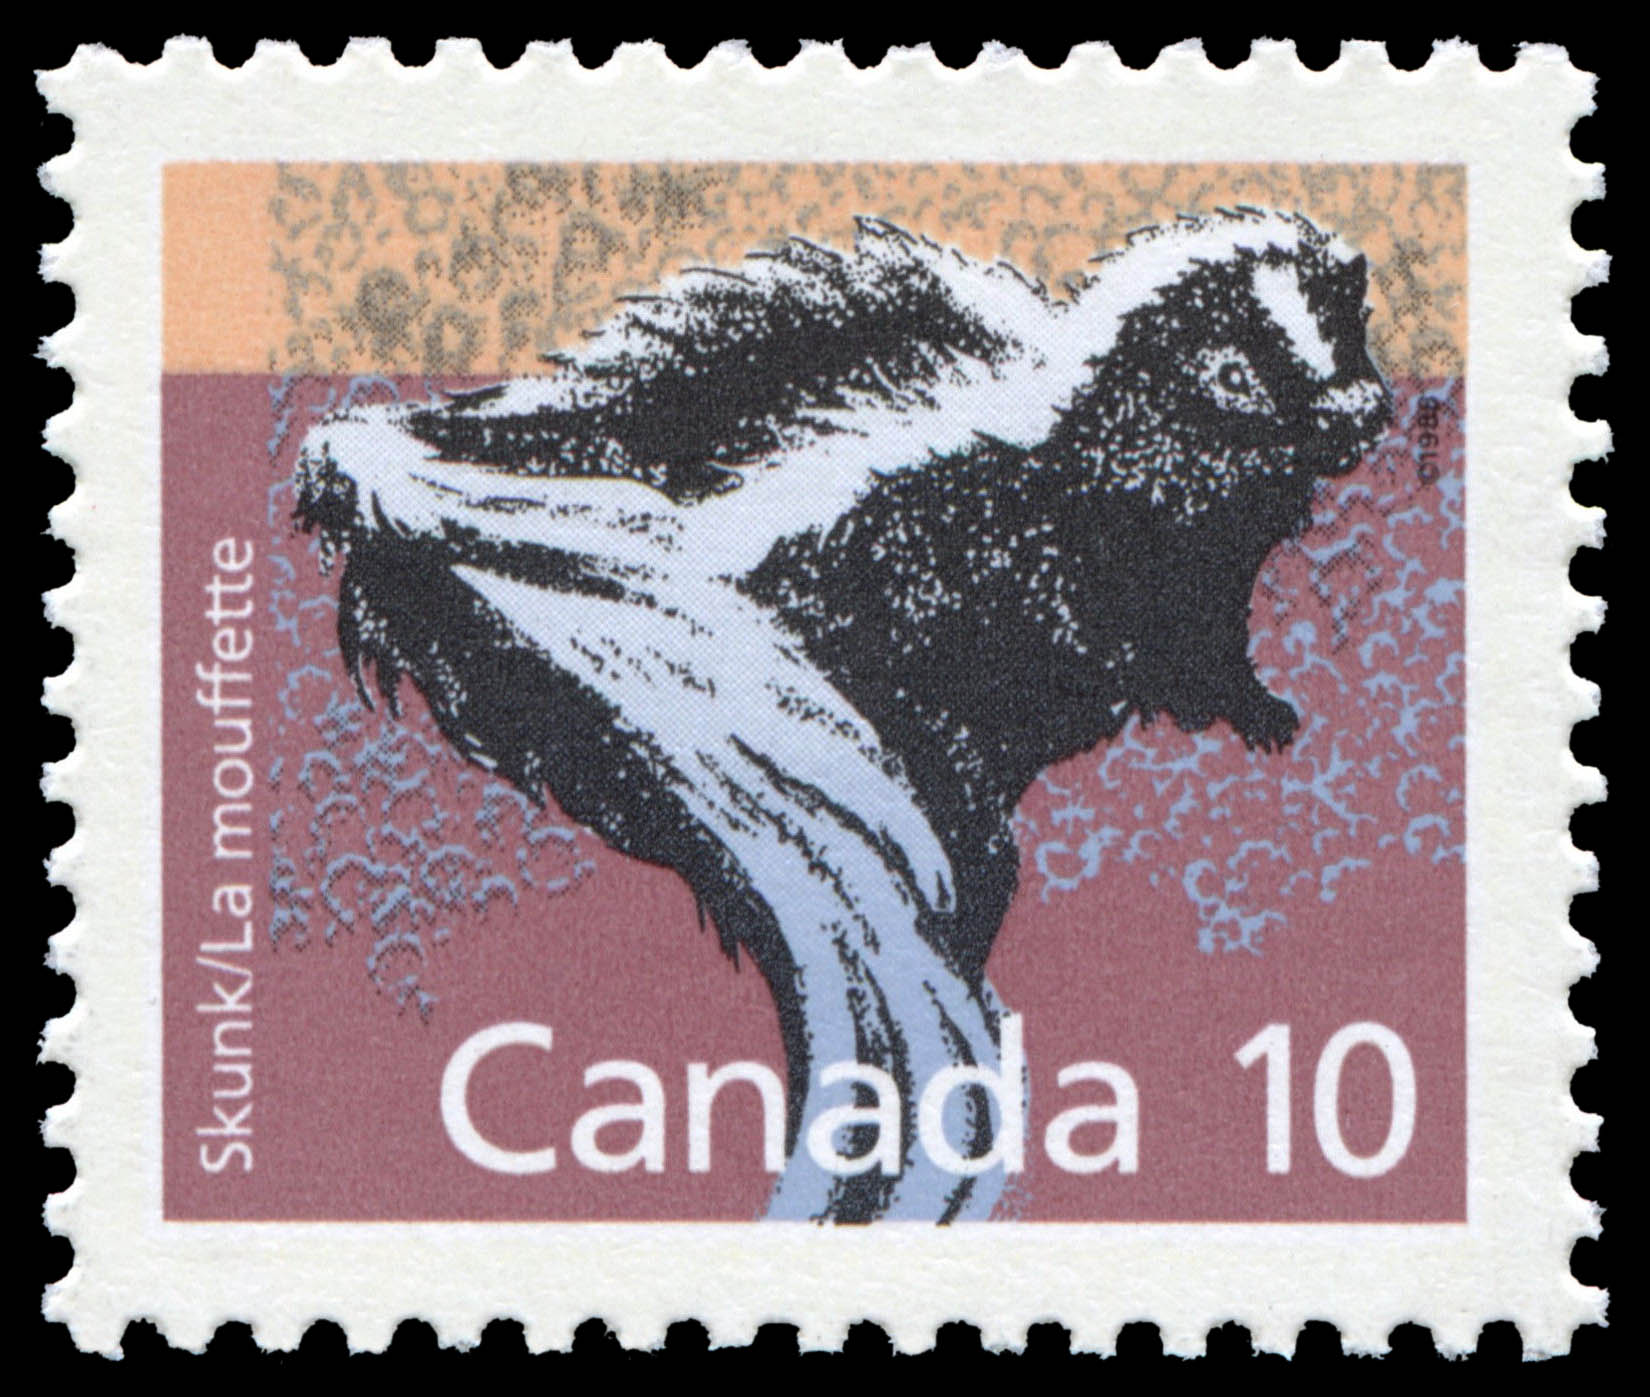 Skunk Canada Postage Stamp | Small Canadian Mammals